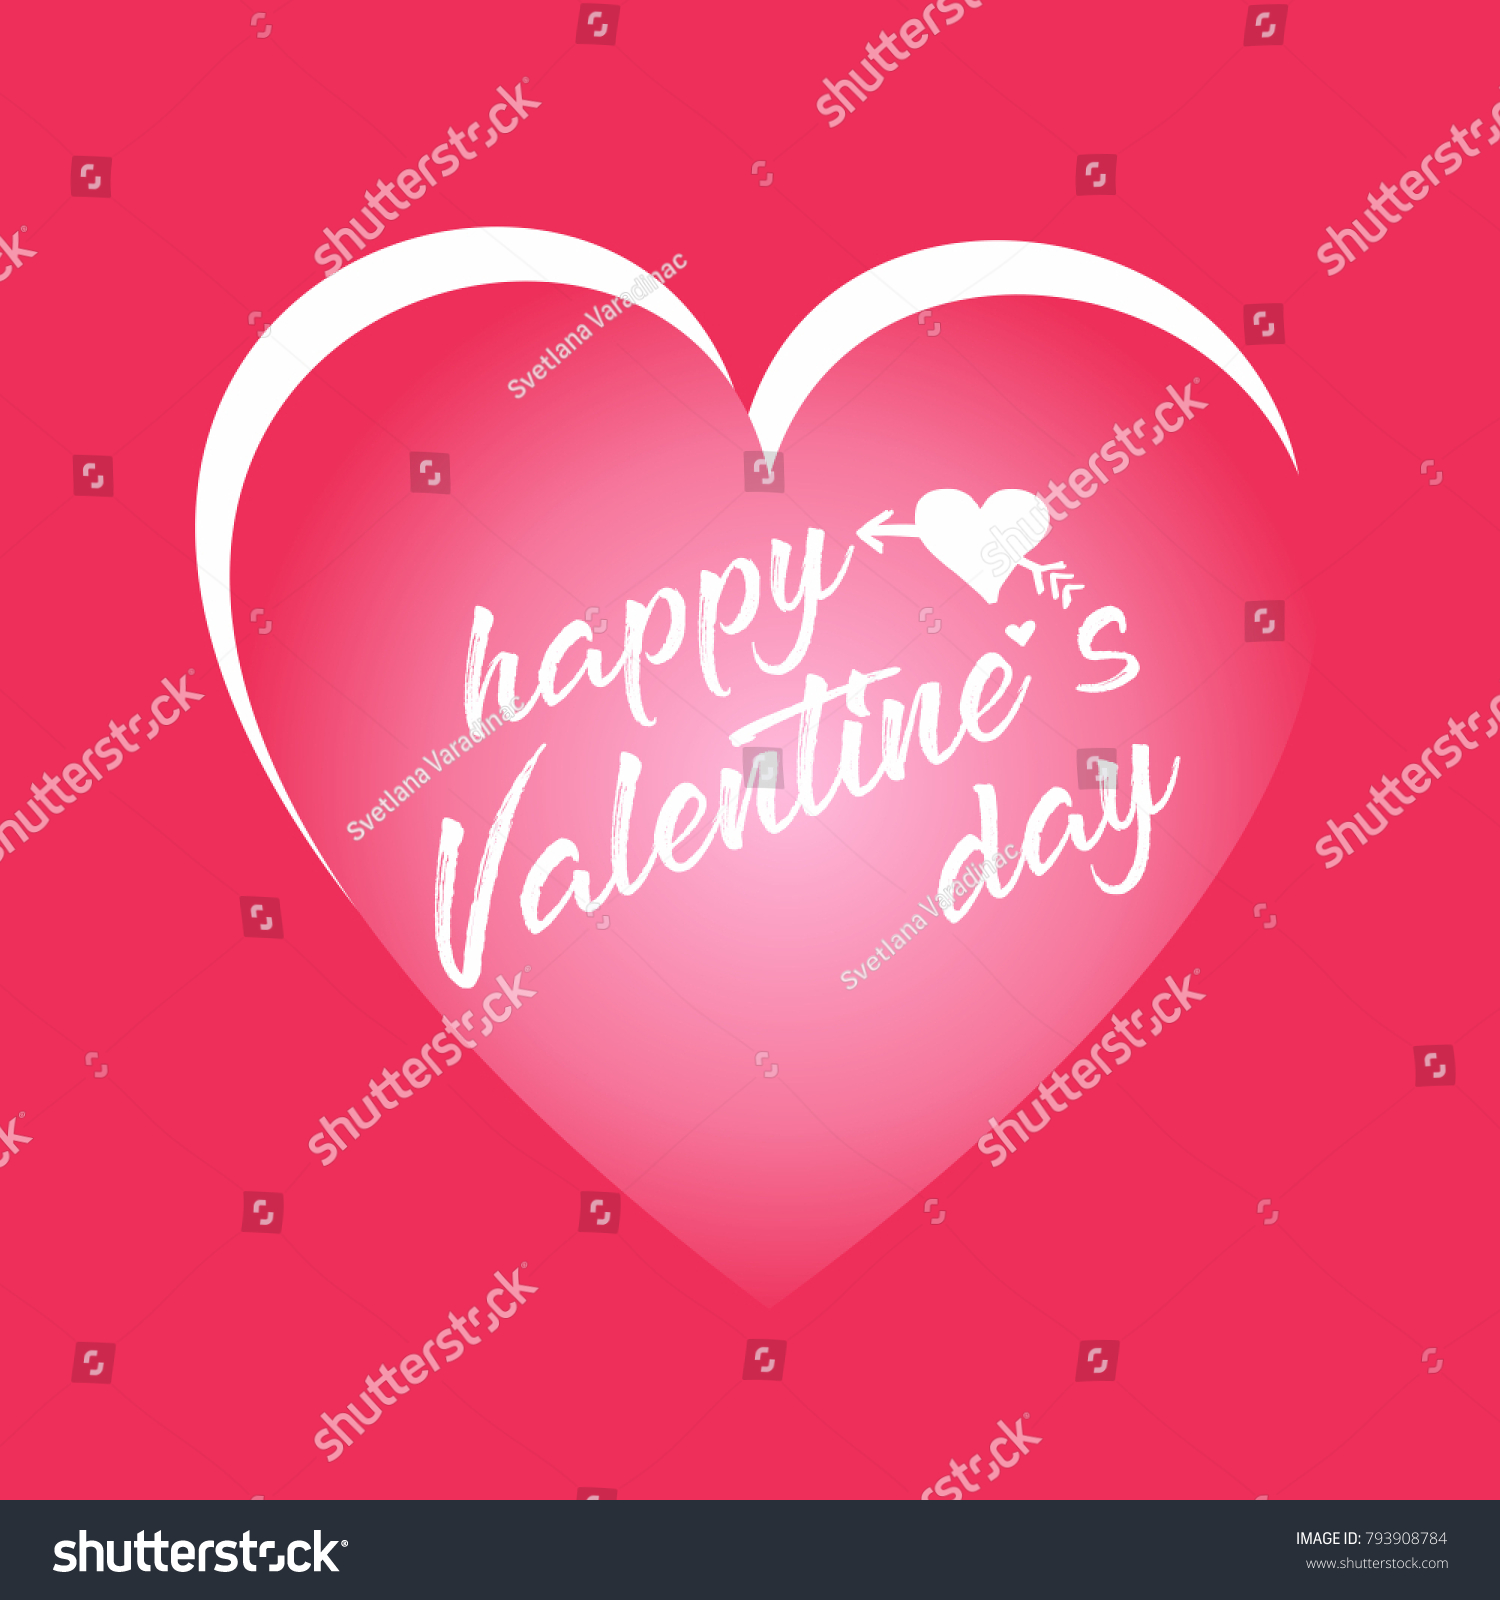 Happy Valentines Day Card Good Greeting Stock Vector 793908784